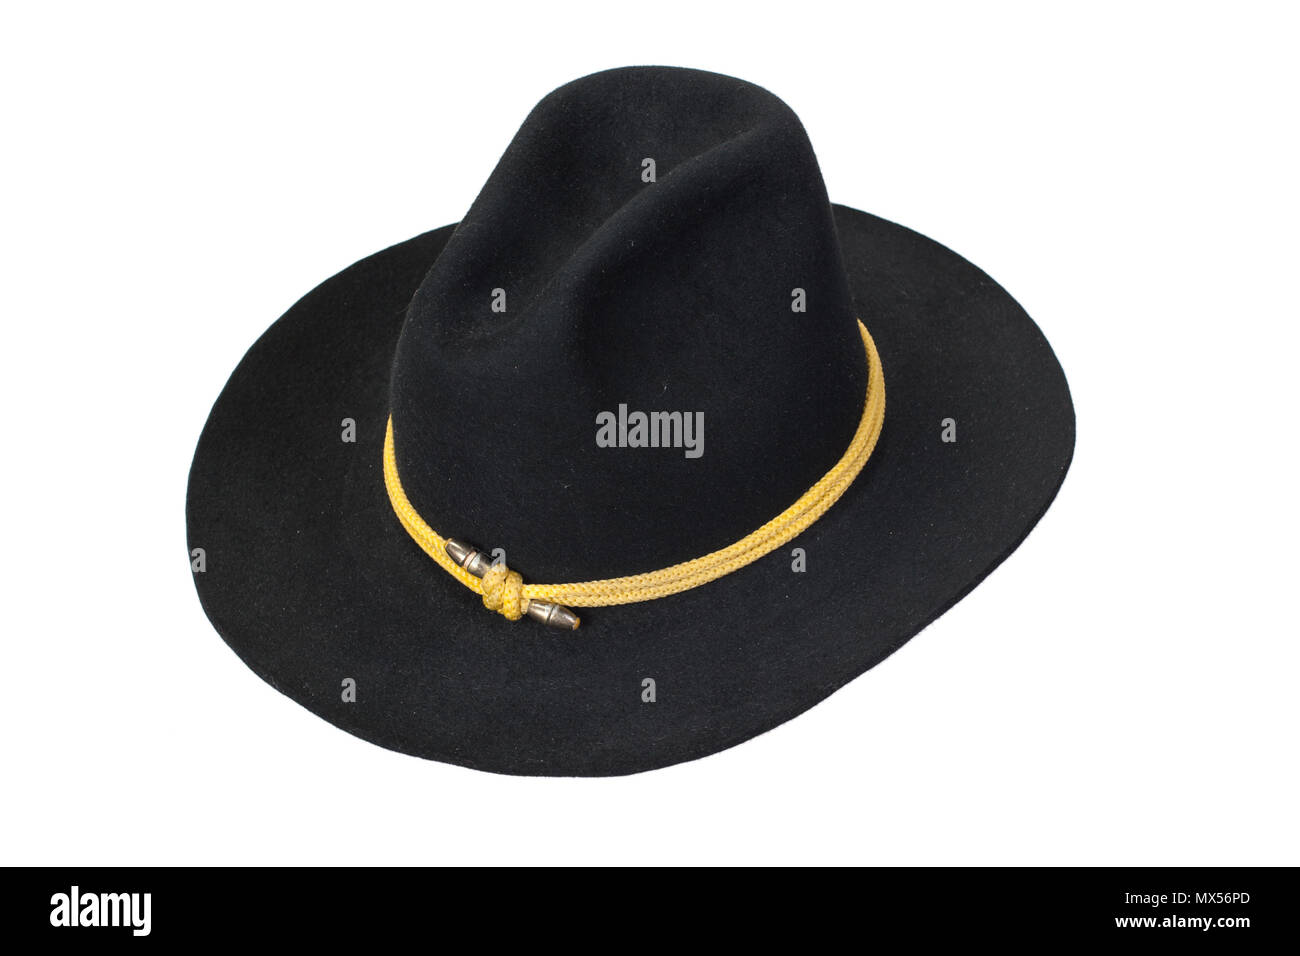 US Cavalry hat isolated - Stock Image